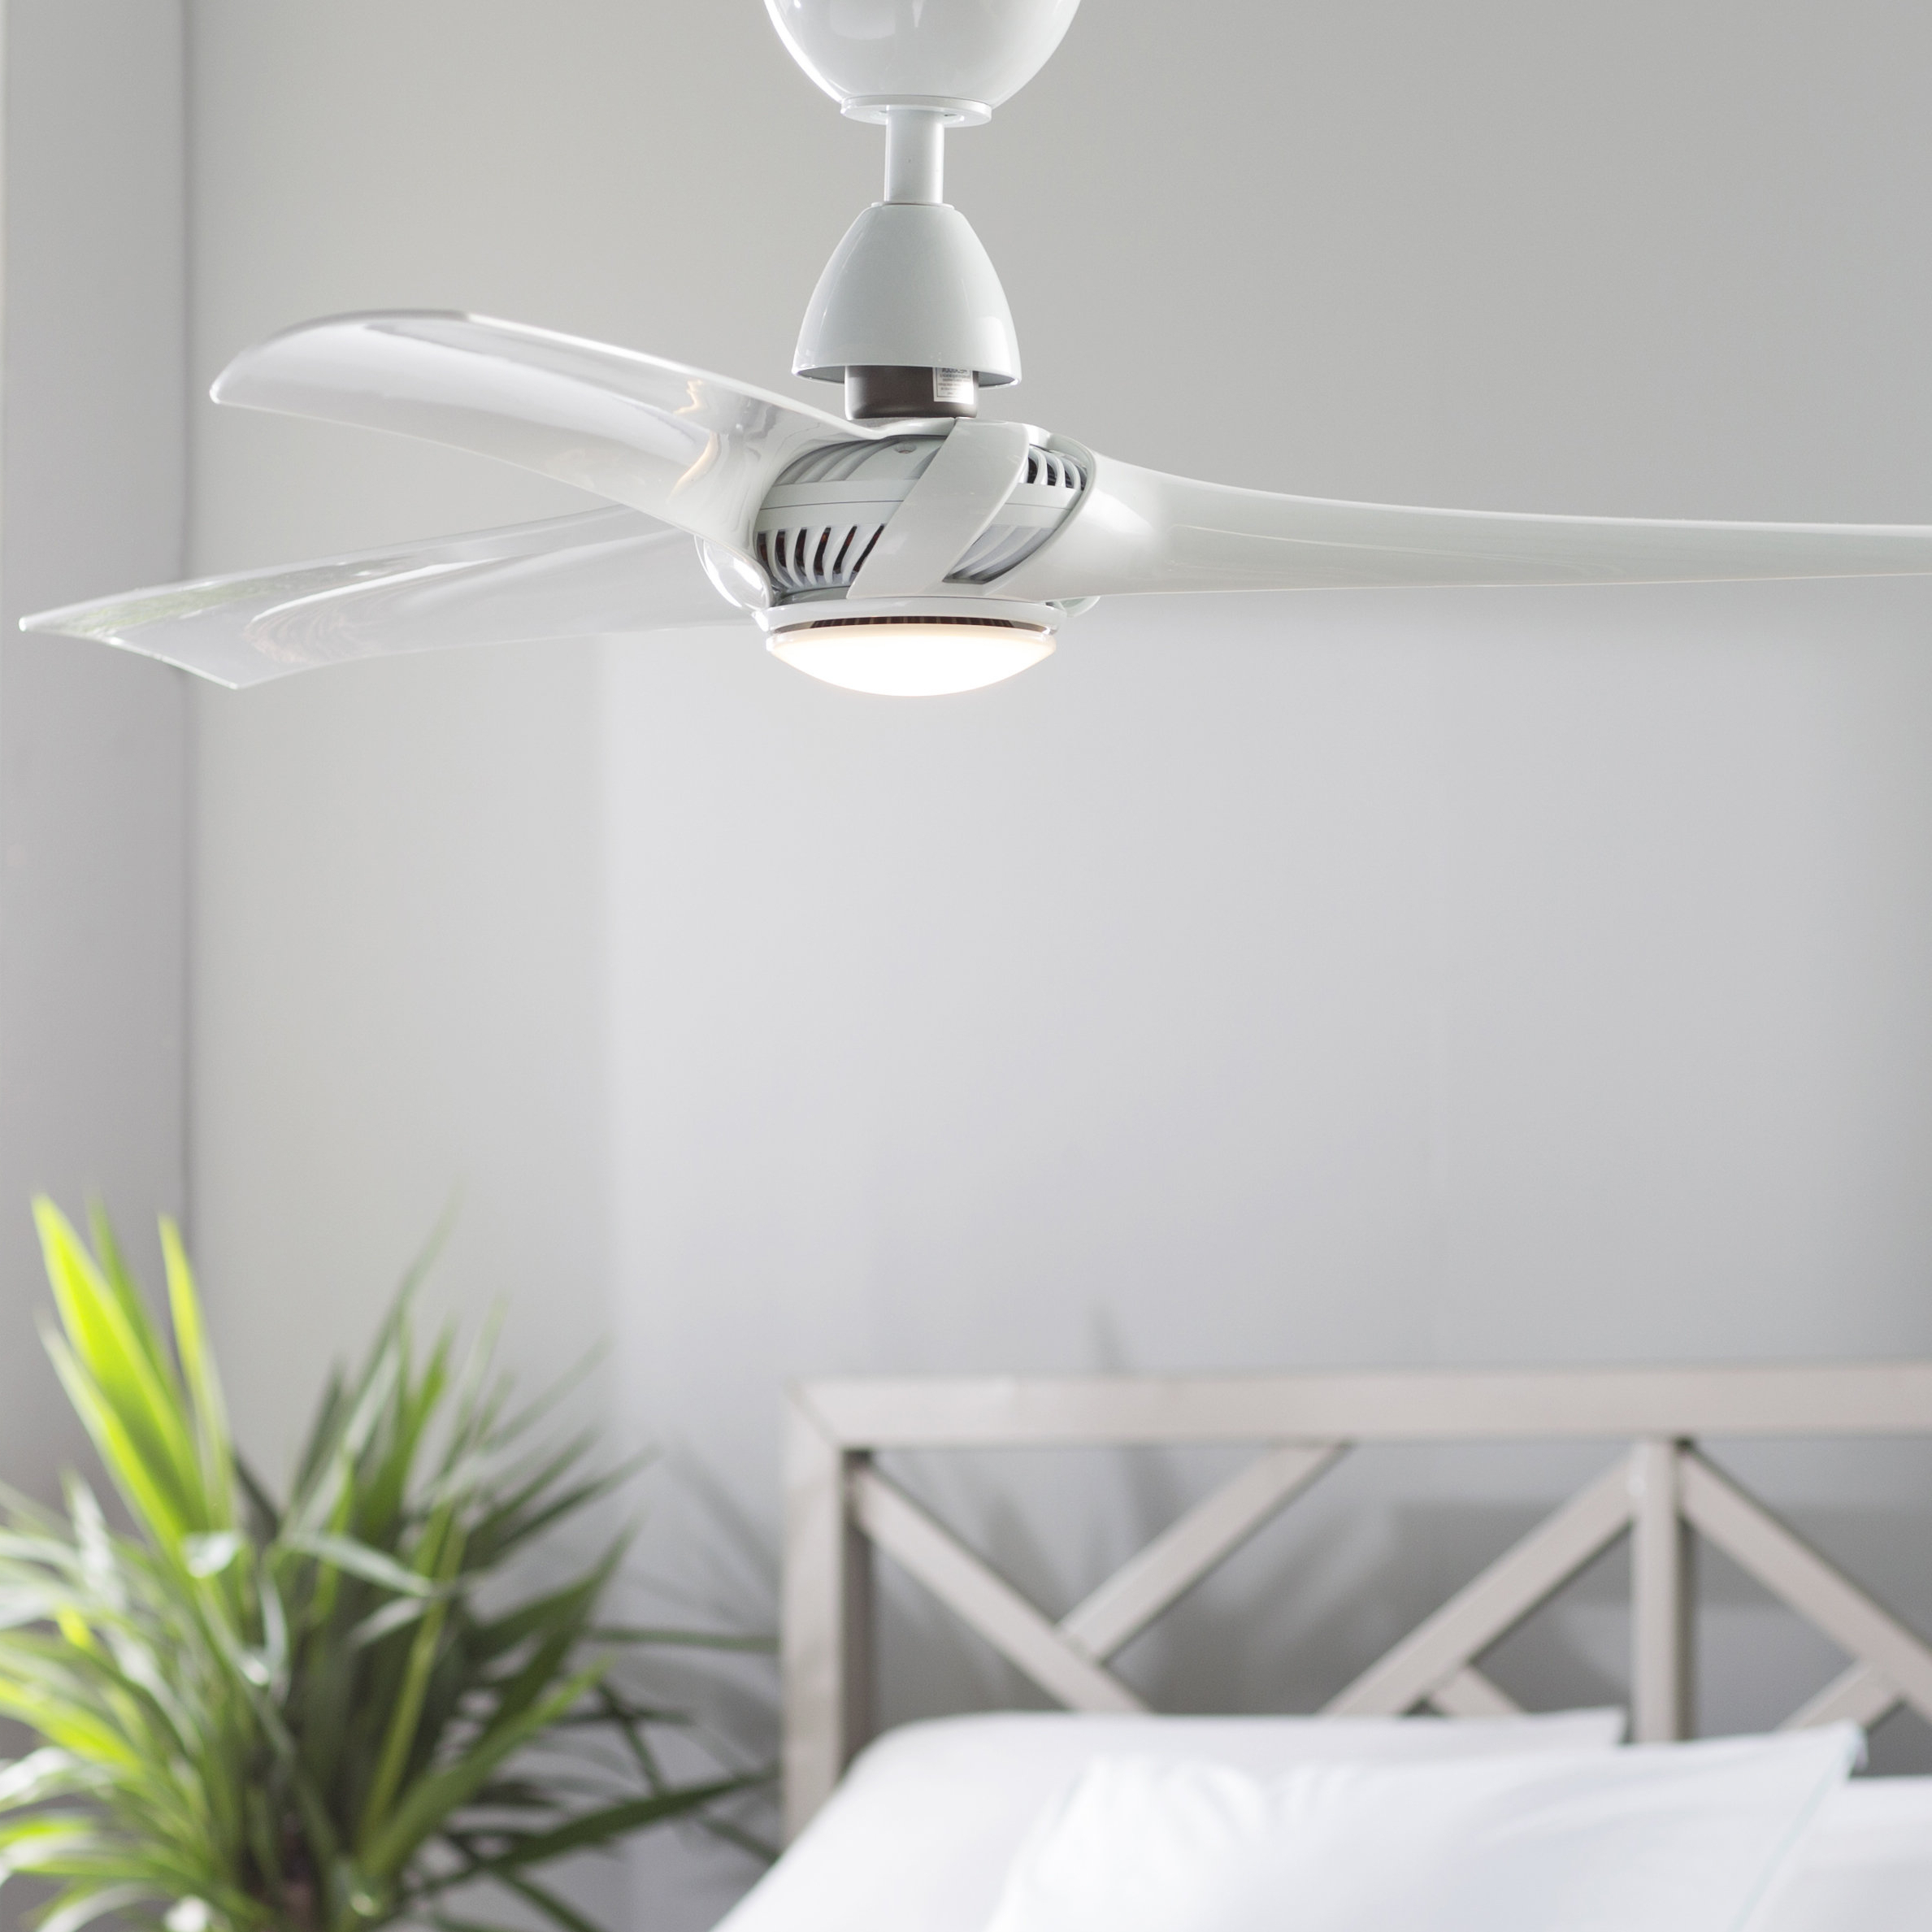 Cairo 3 Blade Led Ceiling Fans With Remote Pertaining To Most Up To Date 52'' Cairo 3 Blade Led Ceiling Fan With Remote, Light Kit Included (View 8 of 20)